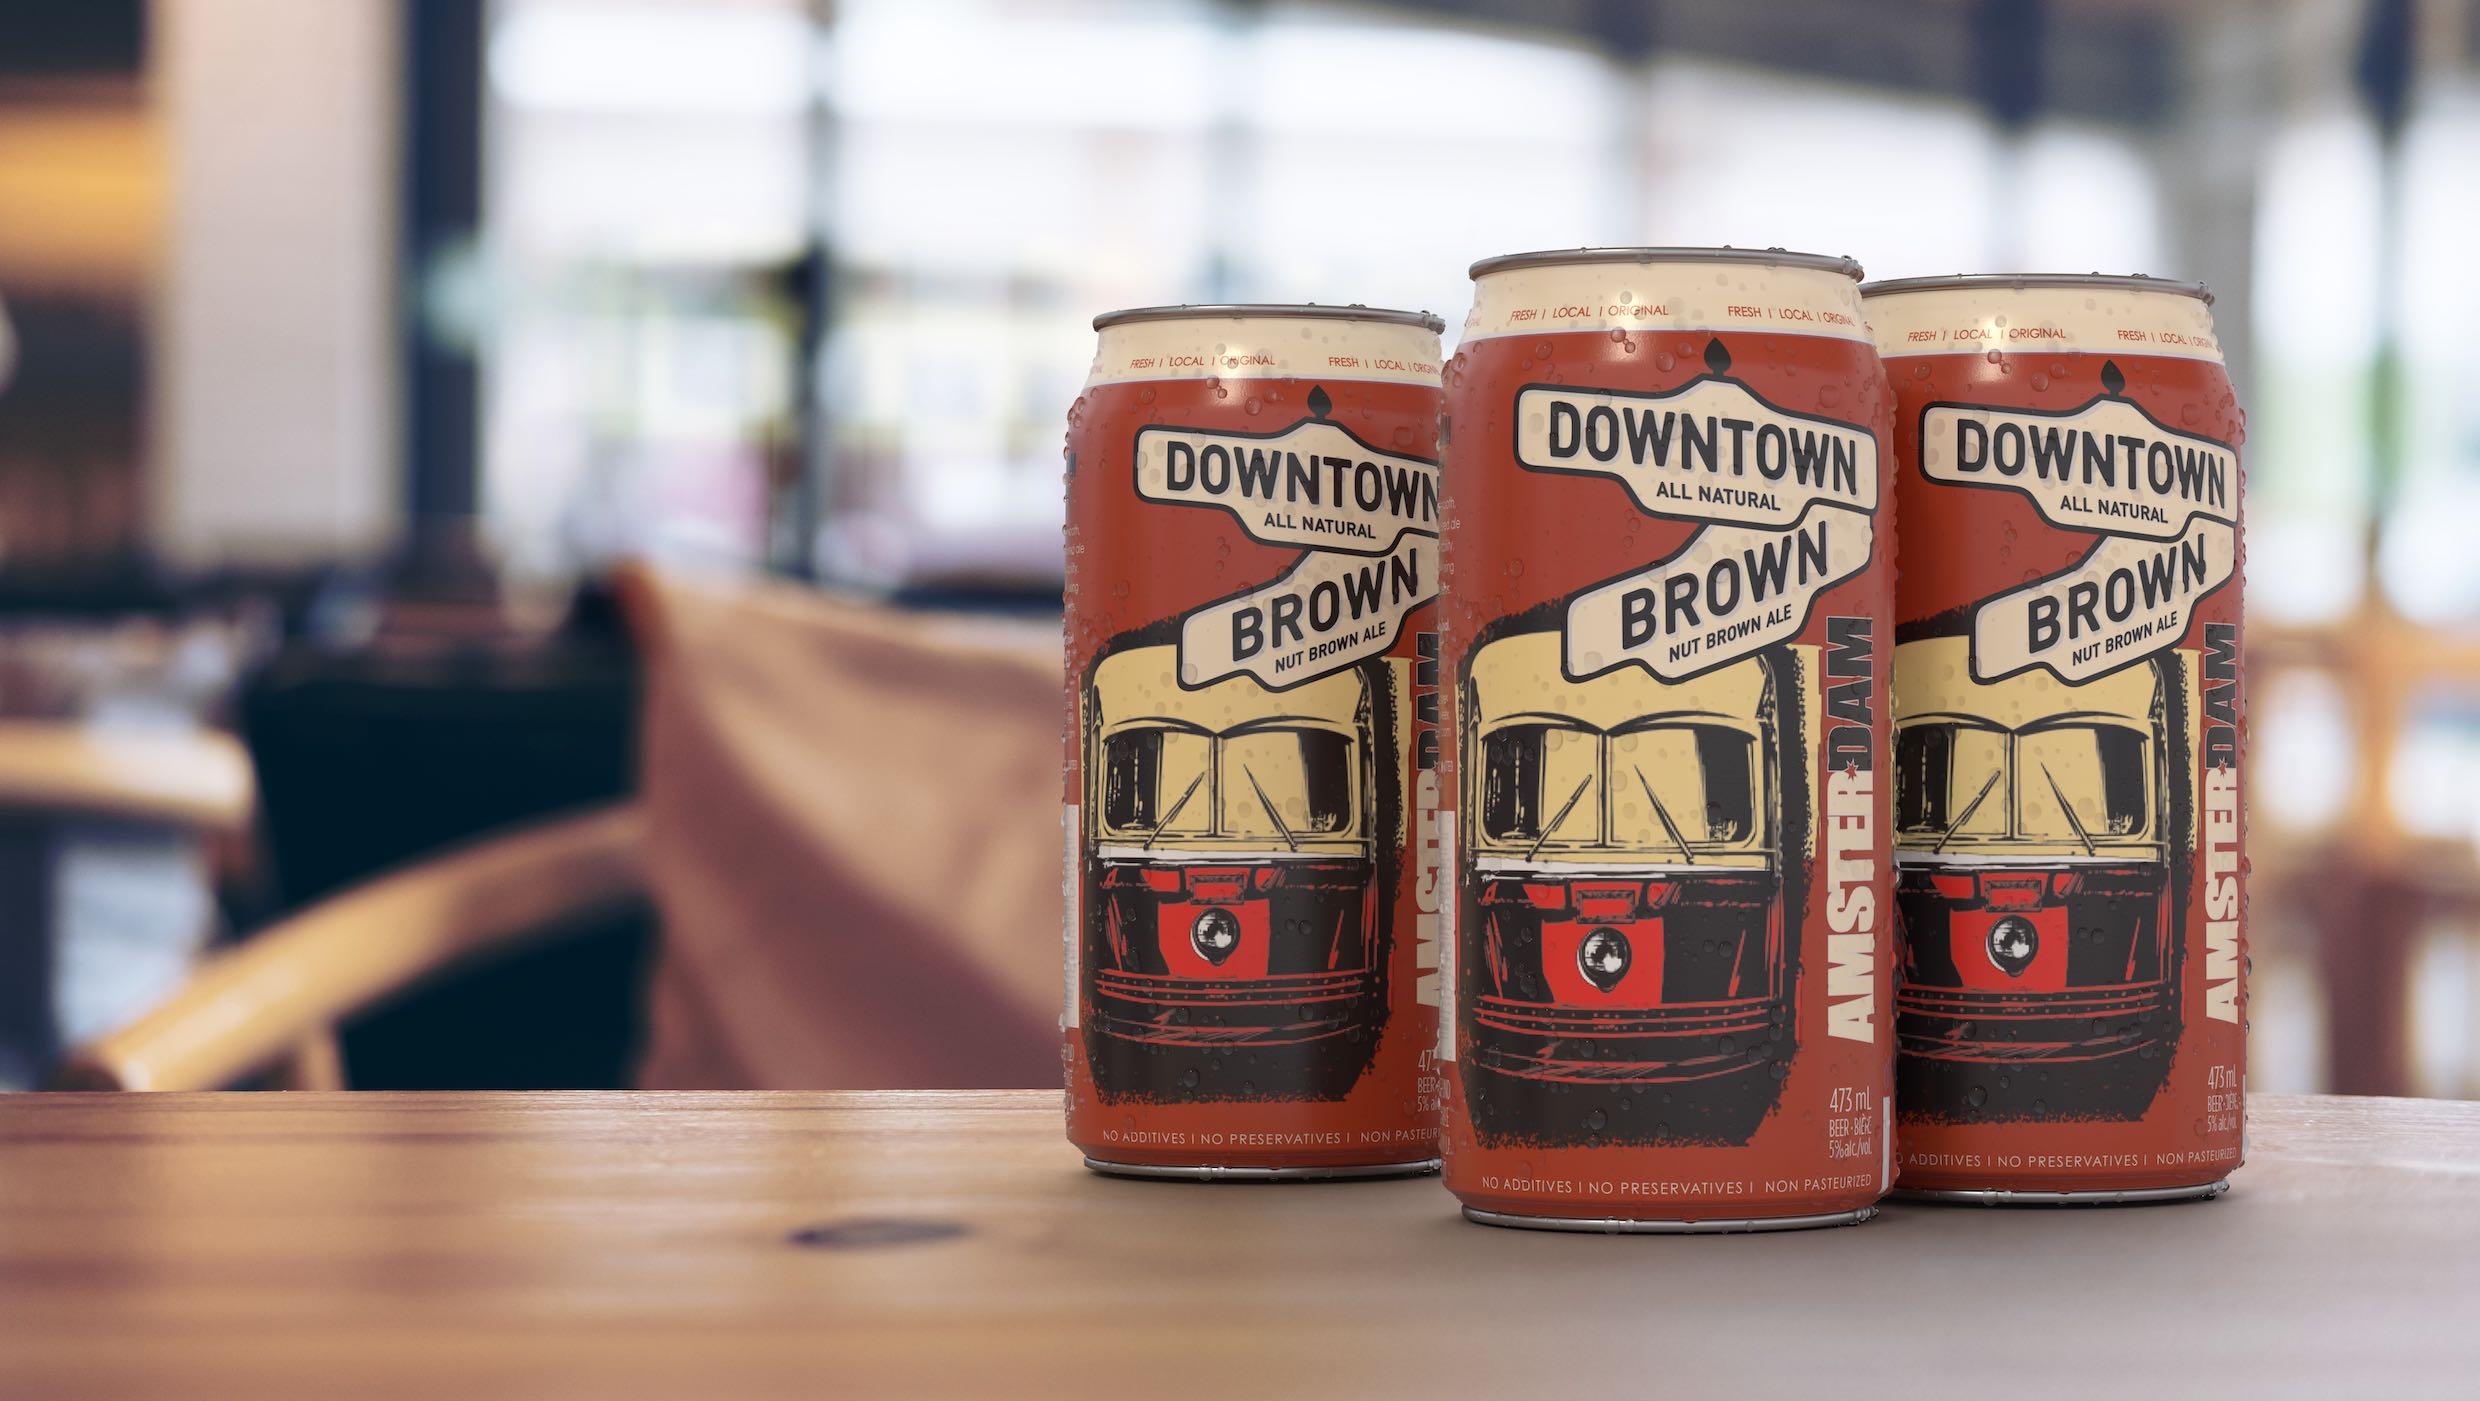 Amsterdam Brewery - Downtown Brown Hero Image